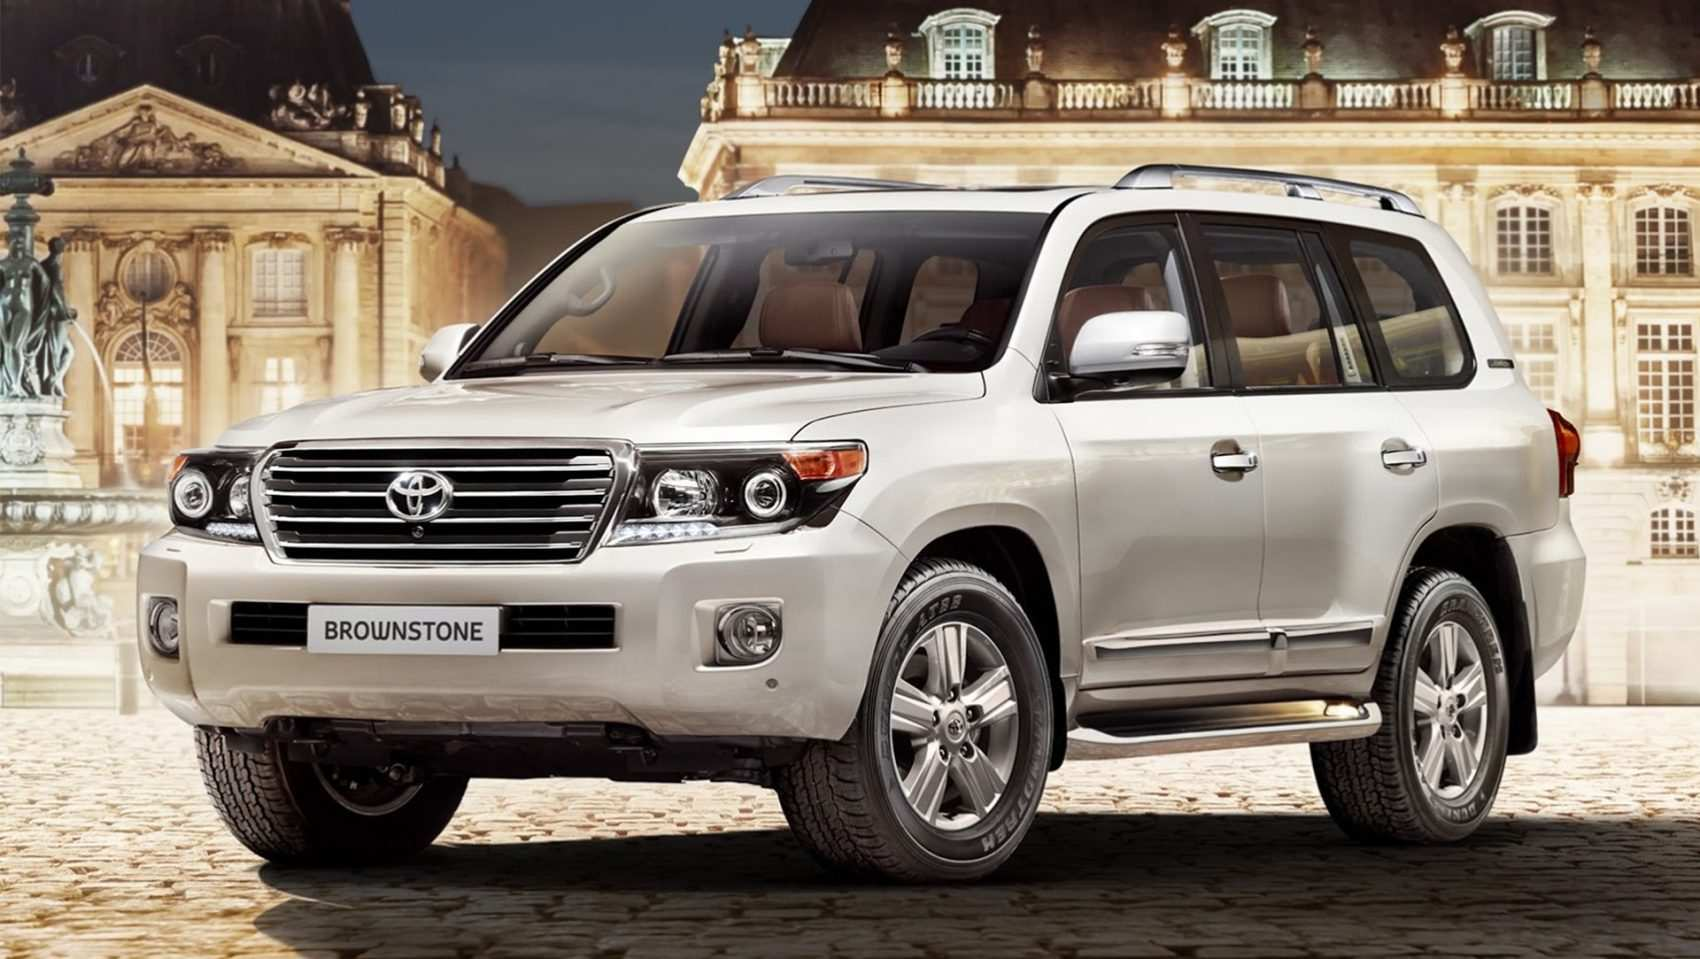 56 The Best 2020 Toyota Land Cruiser Price